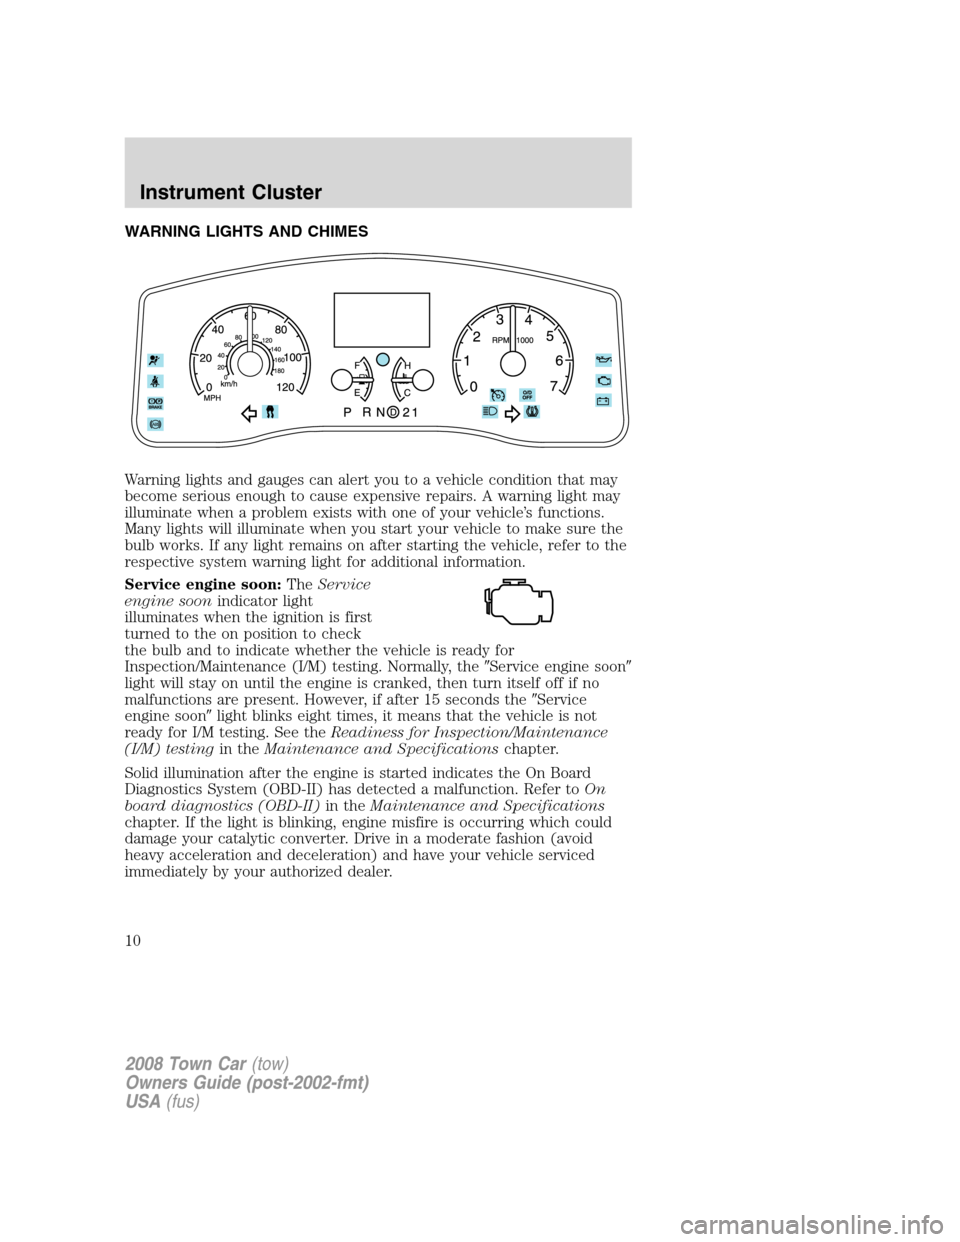 LINCOLN TOWN CAR 2008  Owners Manual, Page 10